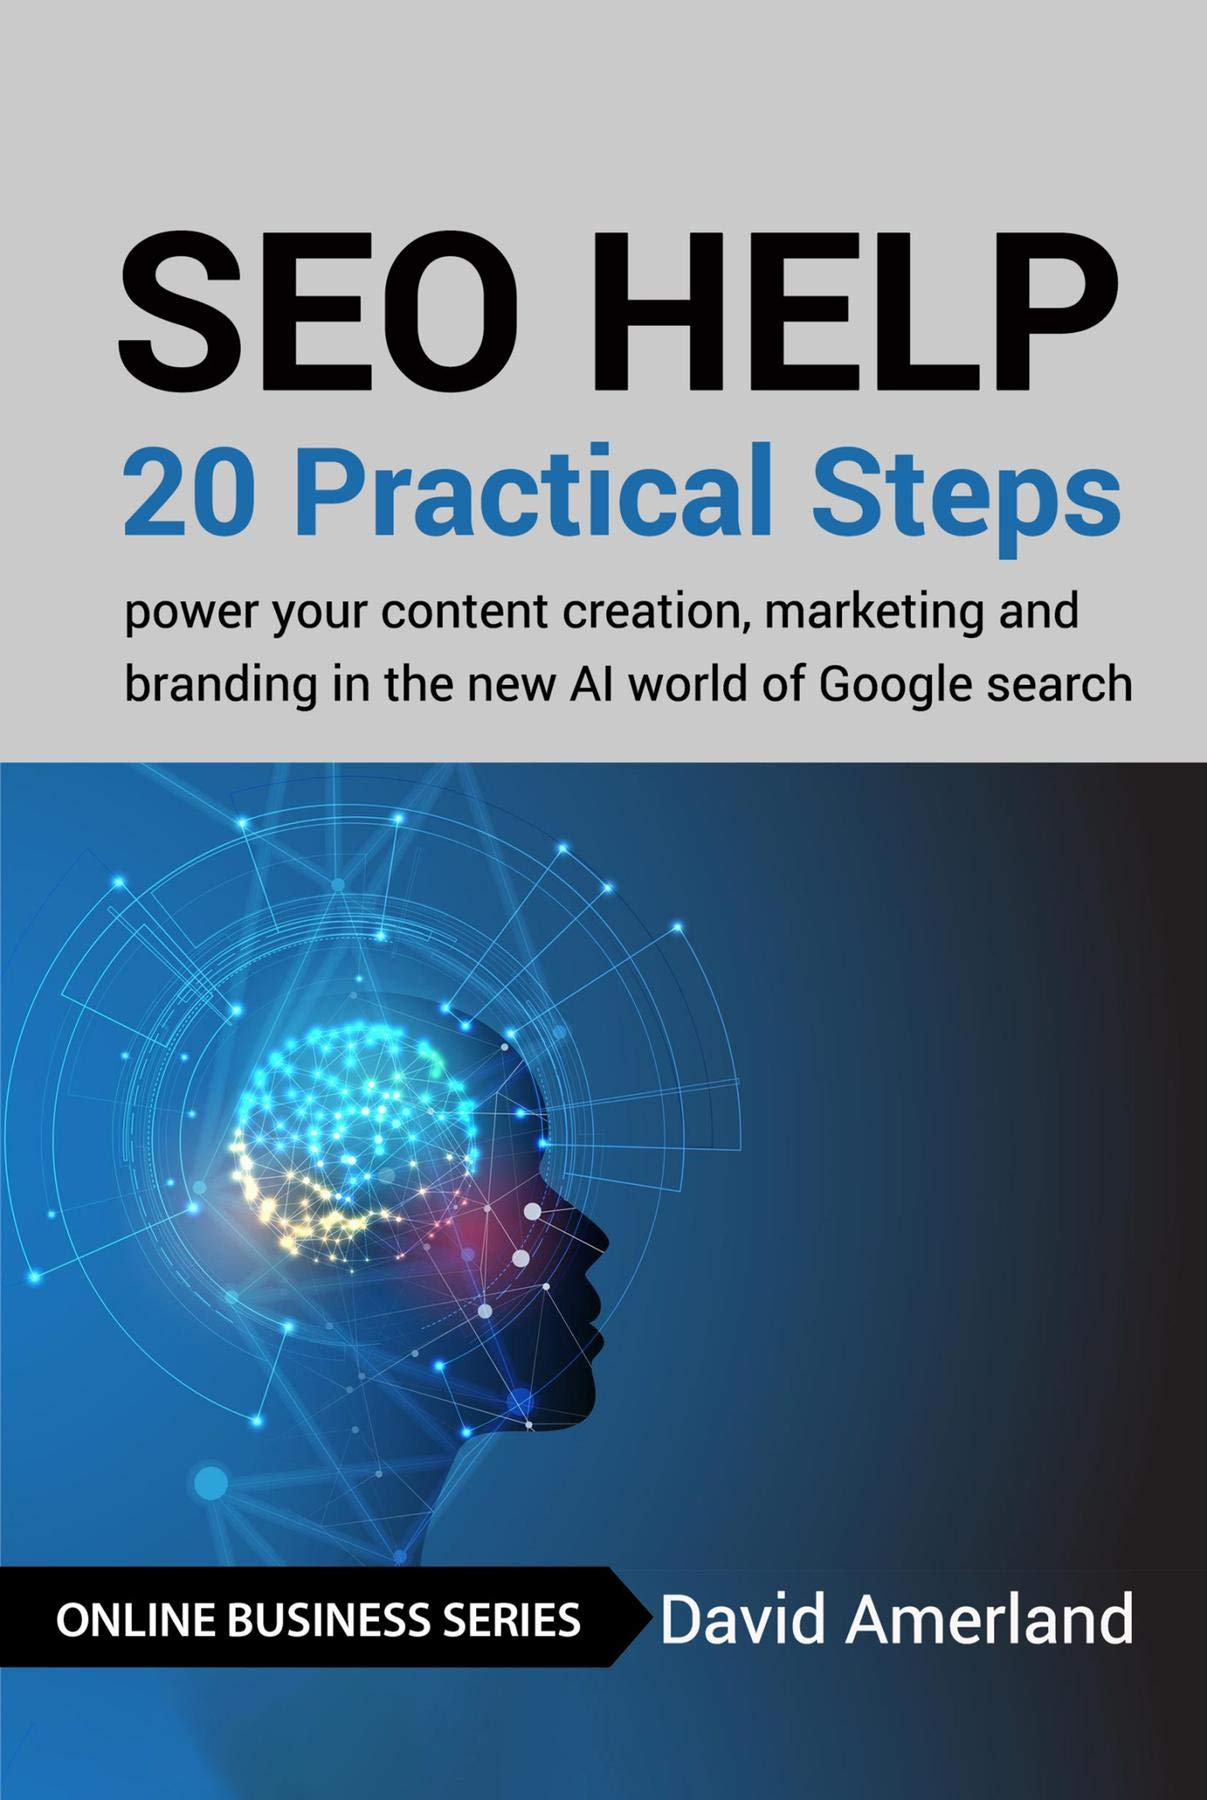 SEO Help: 20 Practical Steps to Power your Content Creation, Marketing and Branding in the new AI world of Google Search